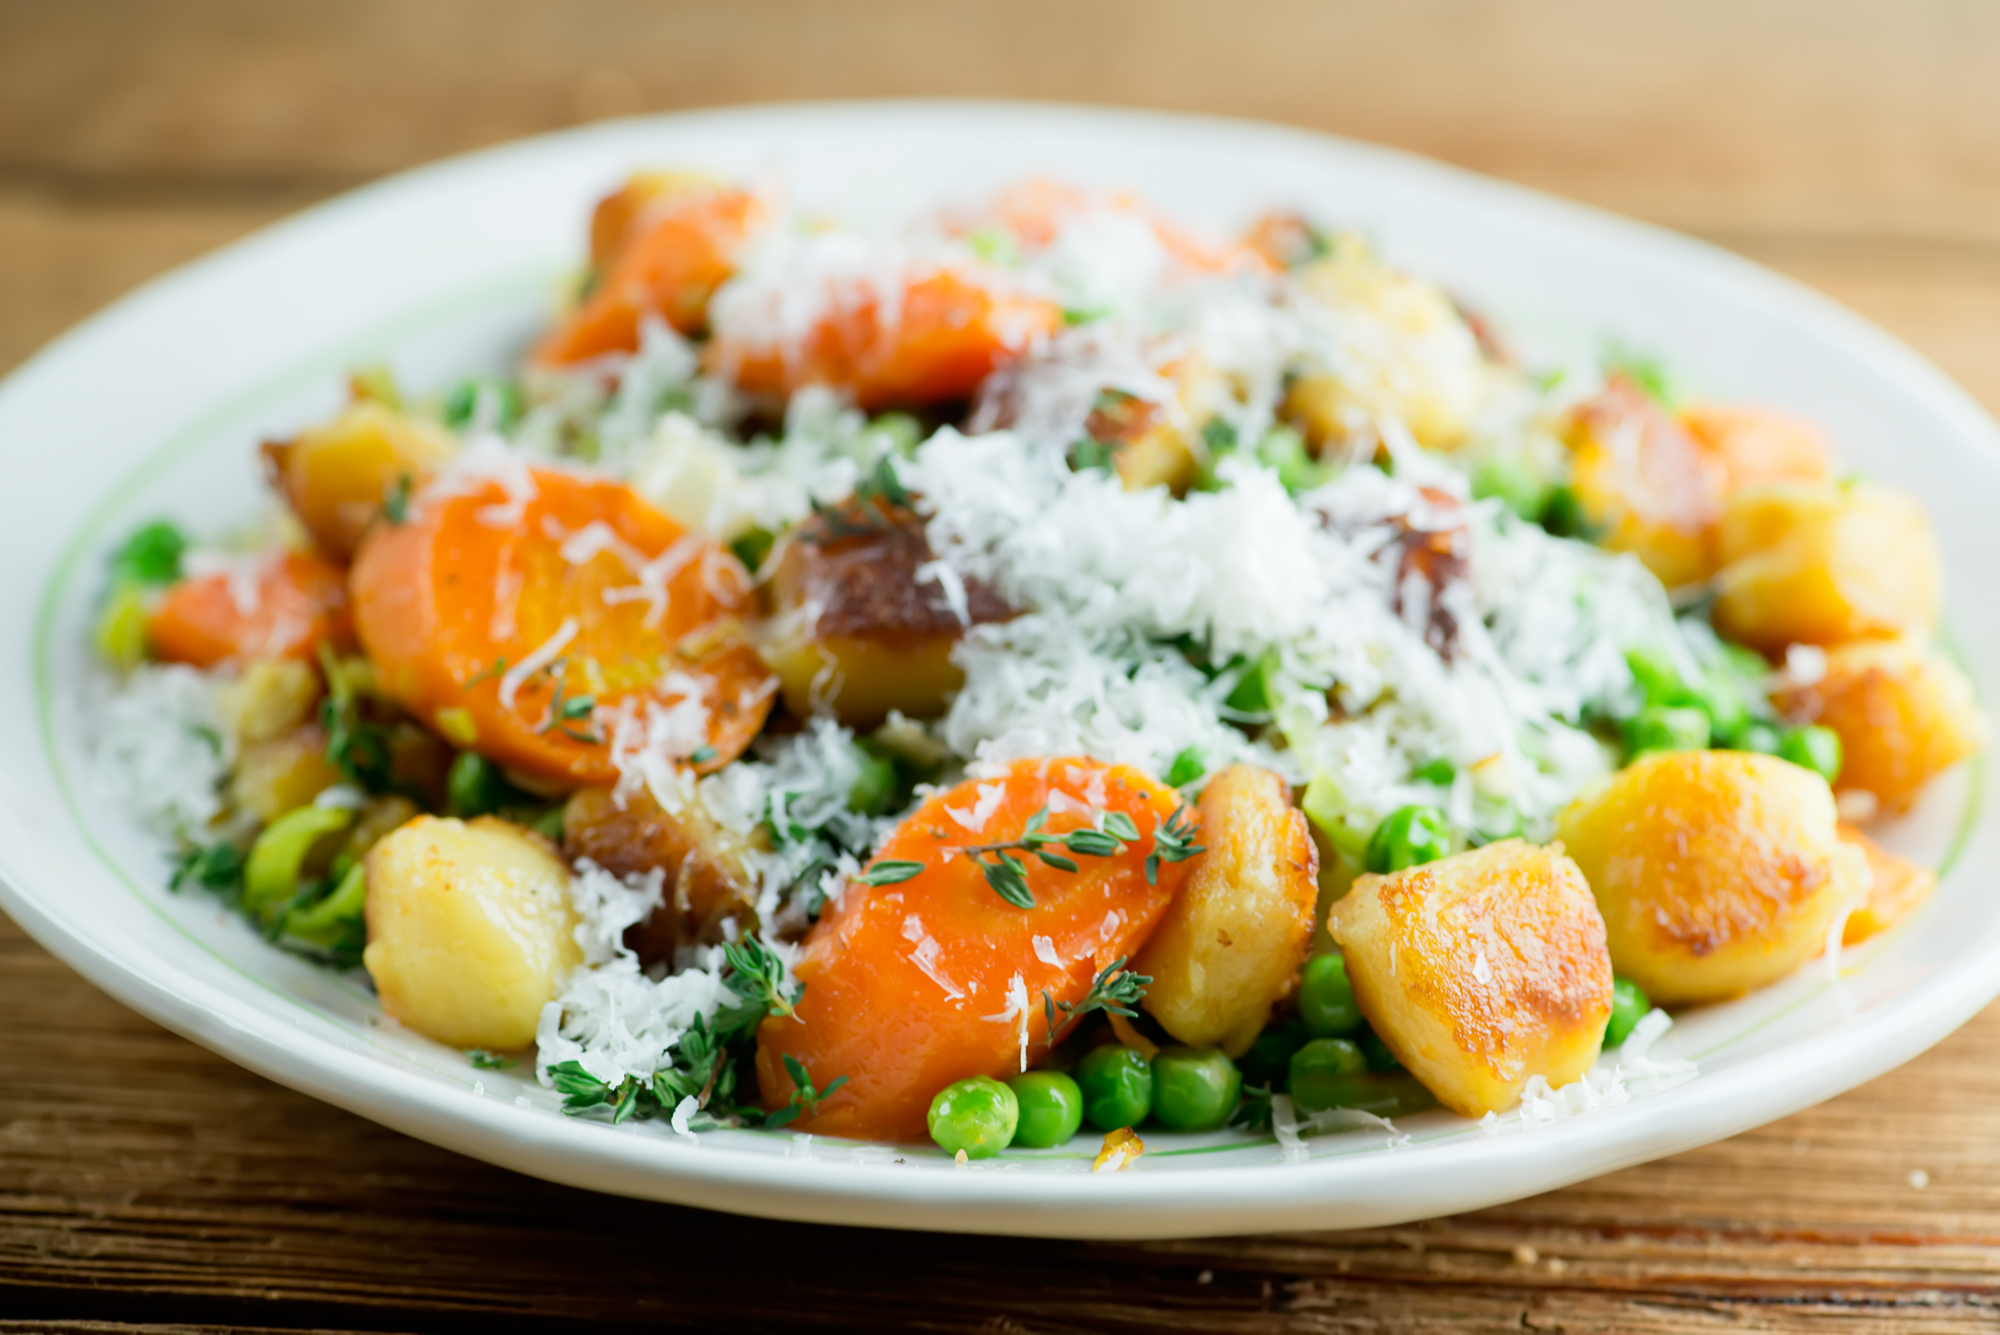 gnocchi with vegetables